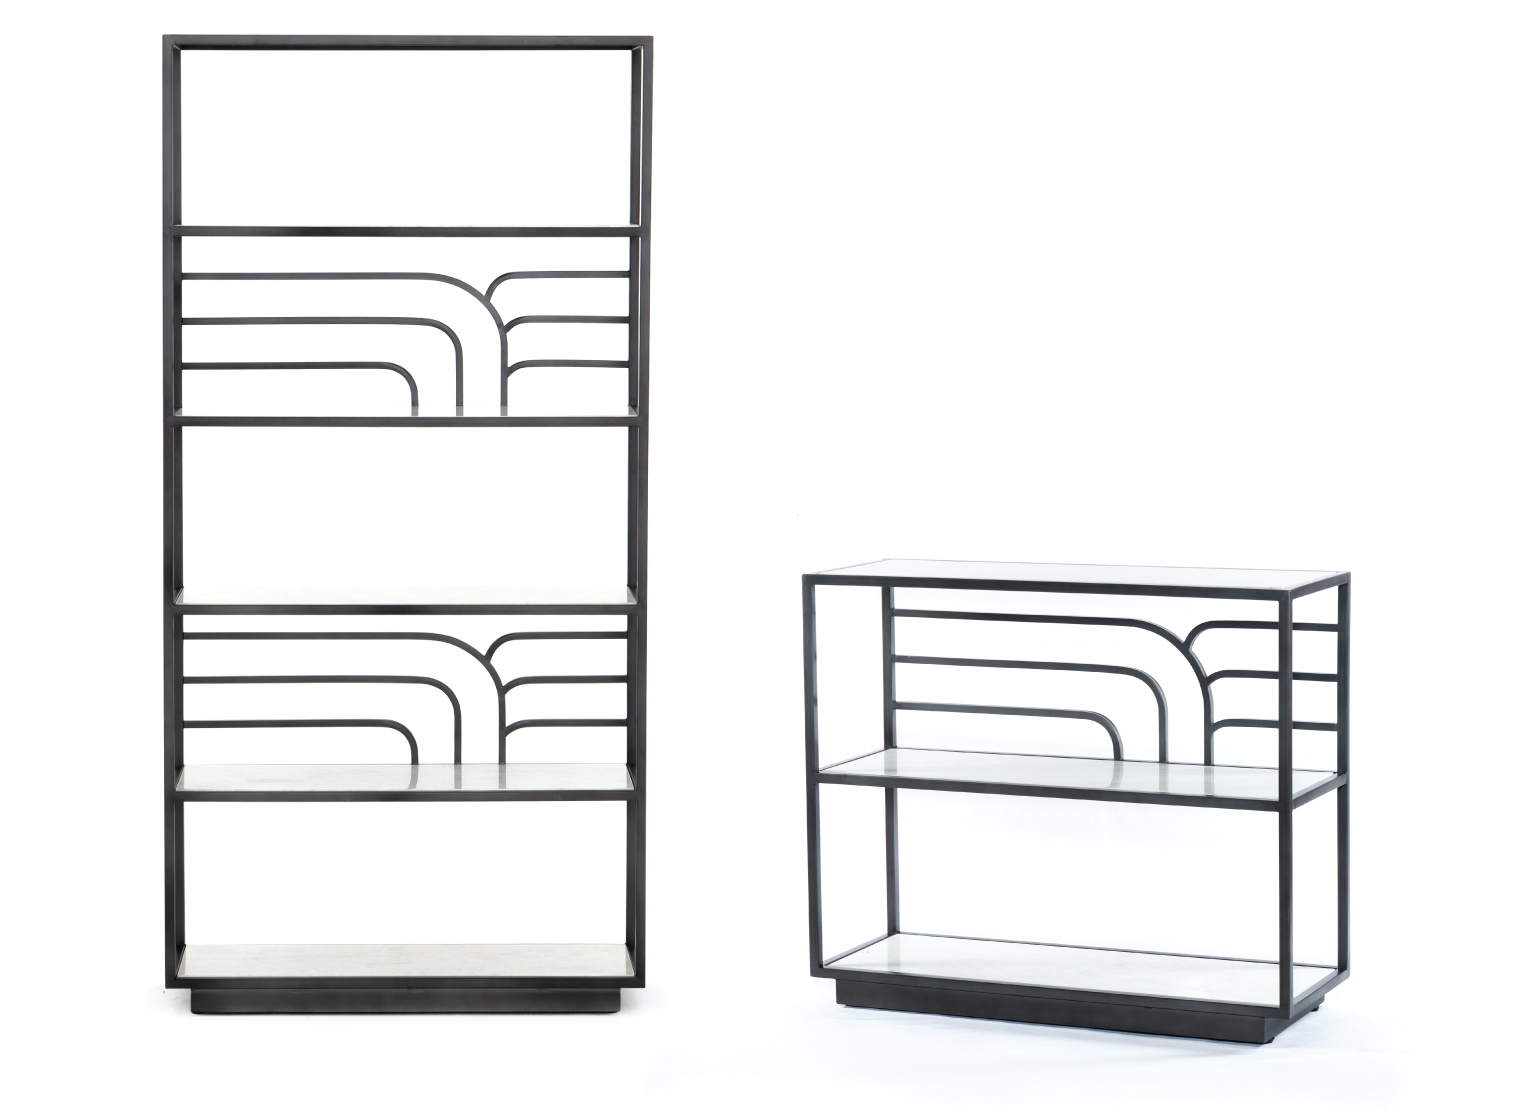 Marcel Bookshelf & Console Table